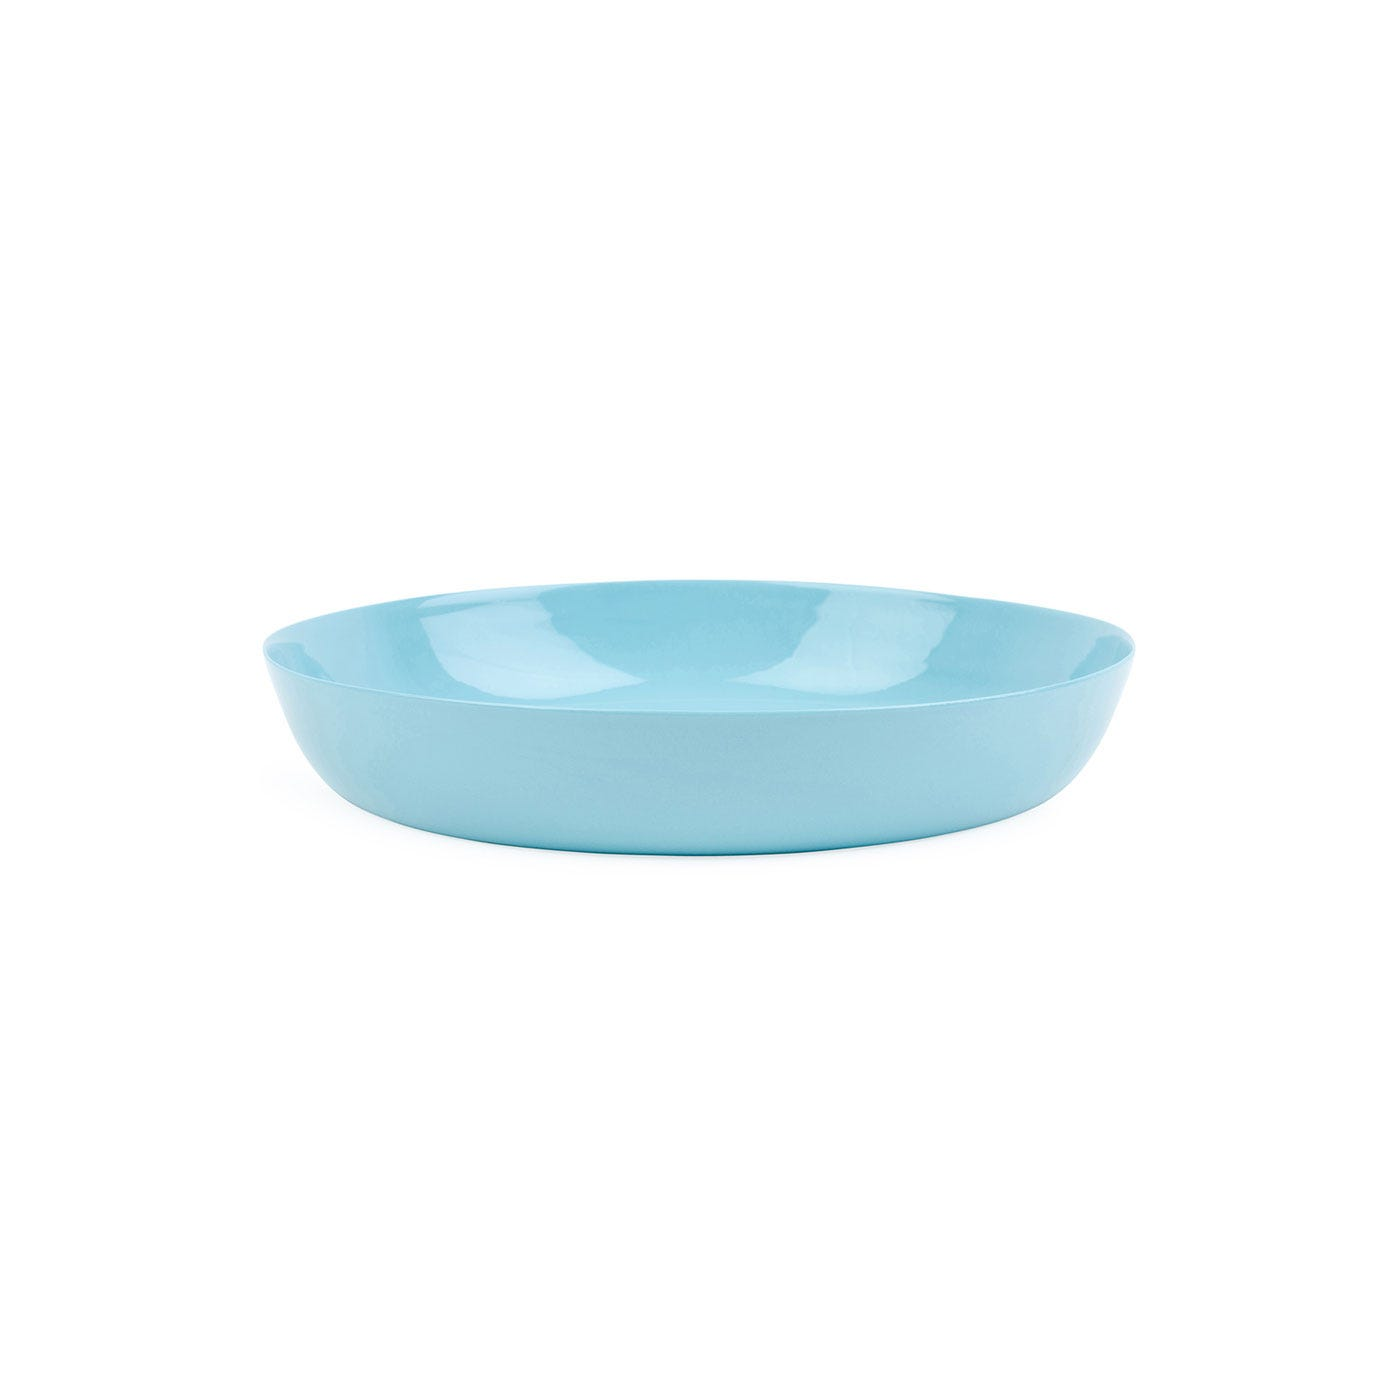 Porcelain Cereal Bowl Turquoise